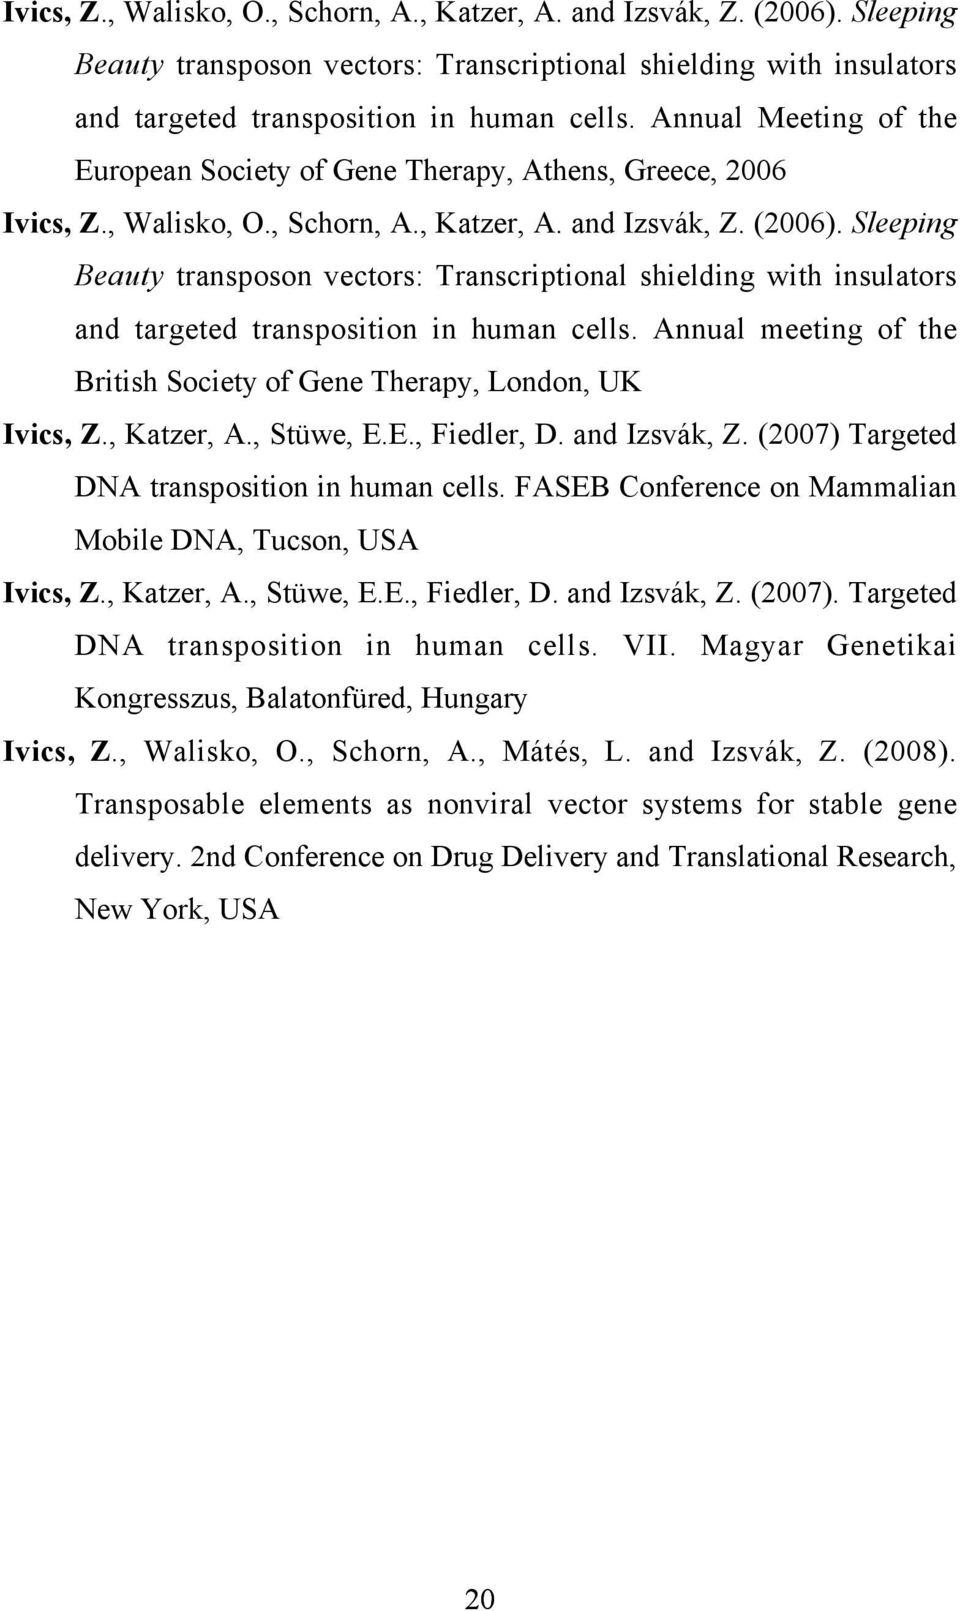 and Izsvák, Z. (2007) Targeted DNA transposition in human cells. FASEB Conference on Mammalian Mobile DNA, Tucson, USA Ivics, Z., Katzer, A., Stüwe, E.E., Fiedler, D. and Izsvák, Z. (2007). Targeted DNA transposition in human cells. VII.